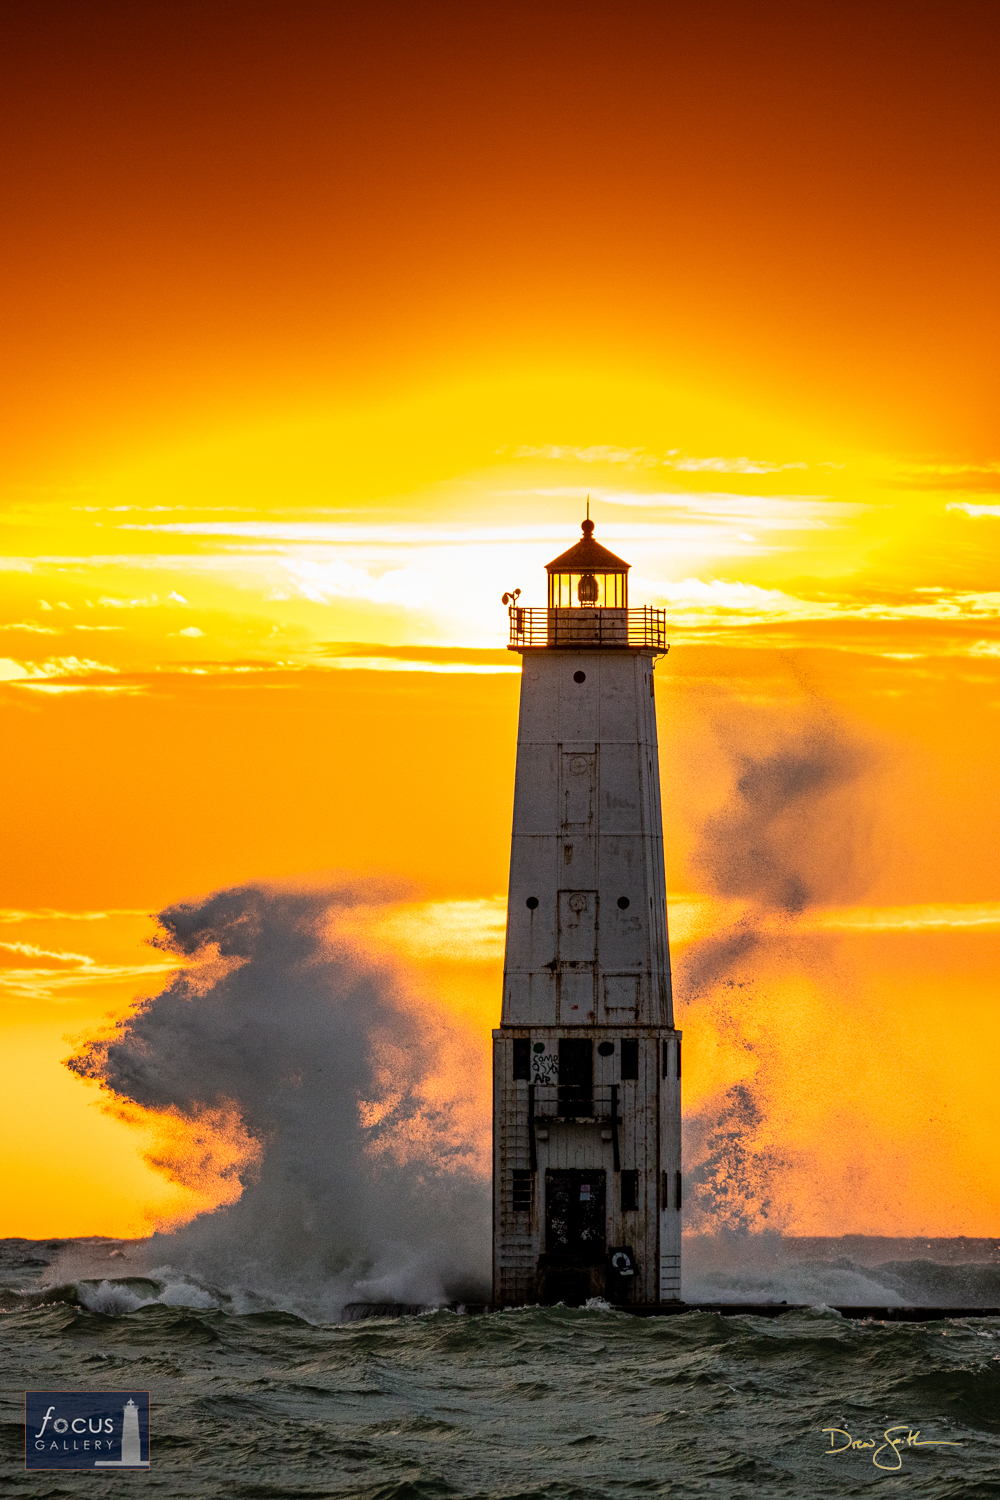 Photo © Drew Smith The sun shines behind the Frankfort Lighthouse as big waves crash, nearly reaching the top of the 70-foot...